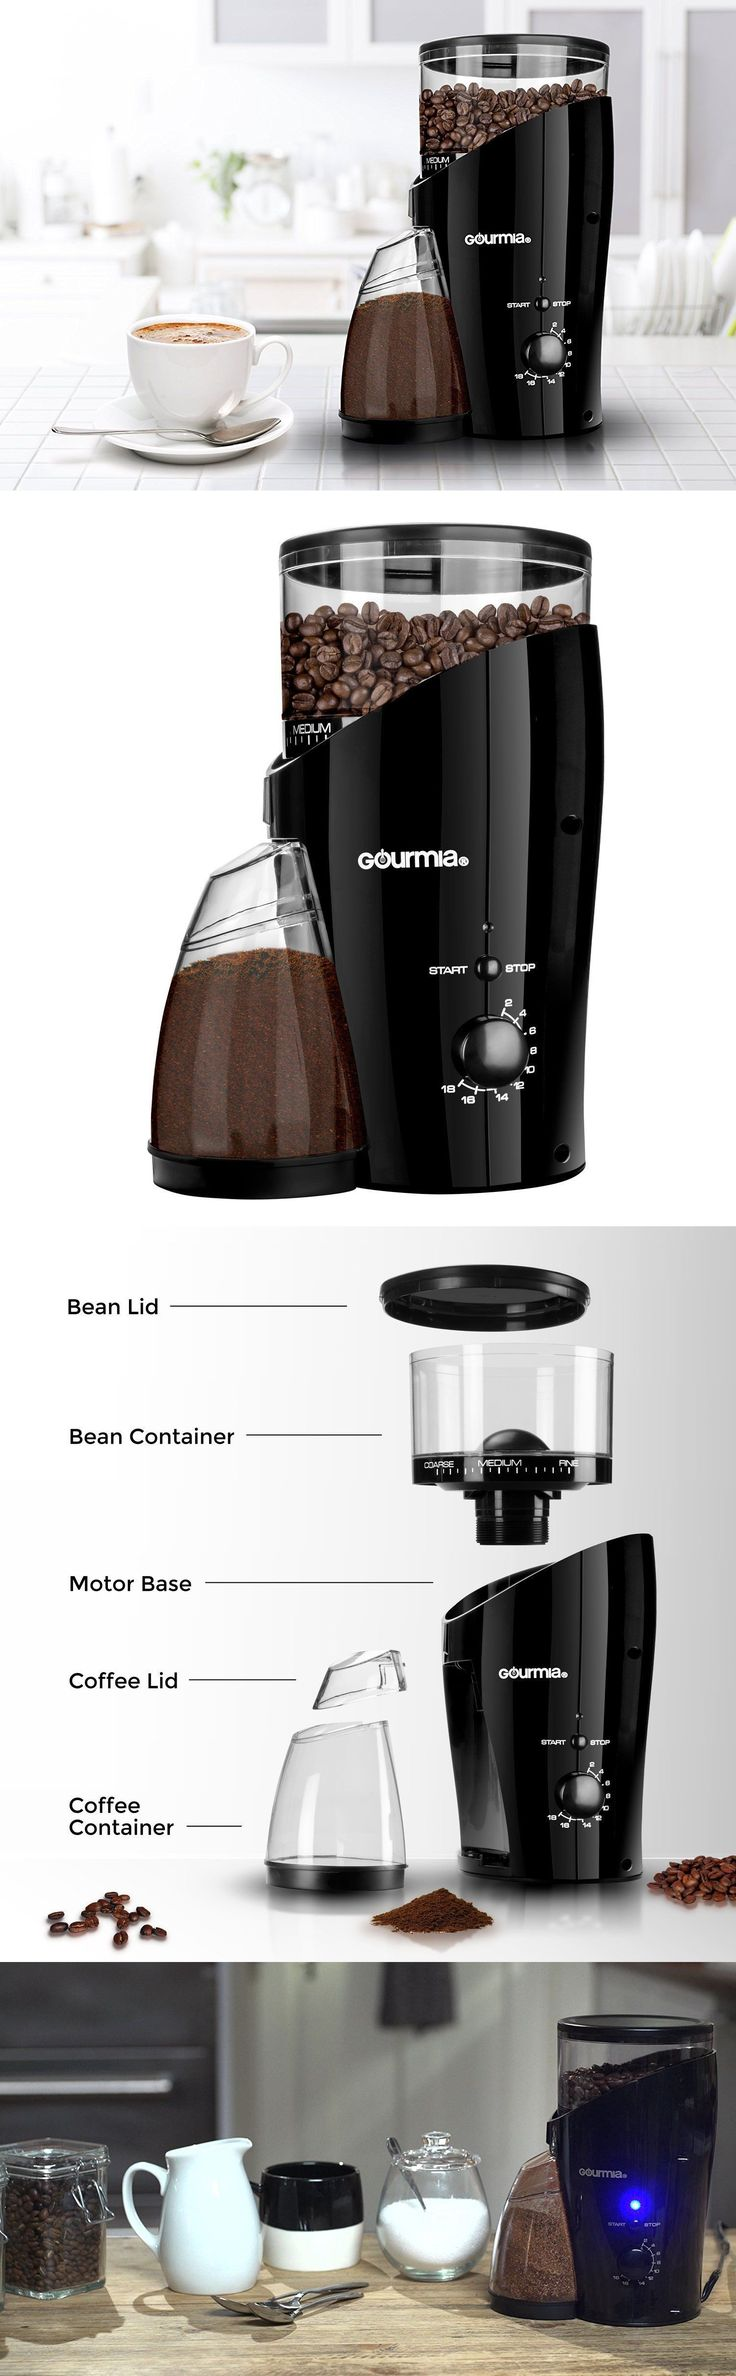 Coffee Grinders 32882: Burr Coffee Grinder Electric Automatic Fine Bean Espresso Black Mill With Bin -> BUY IT NOW ONLY: $51.3 on eBay!